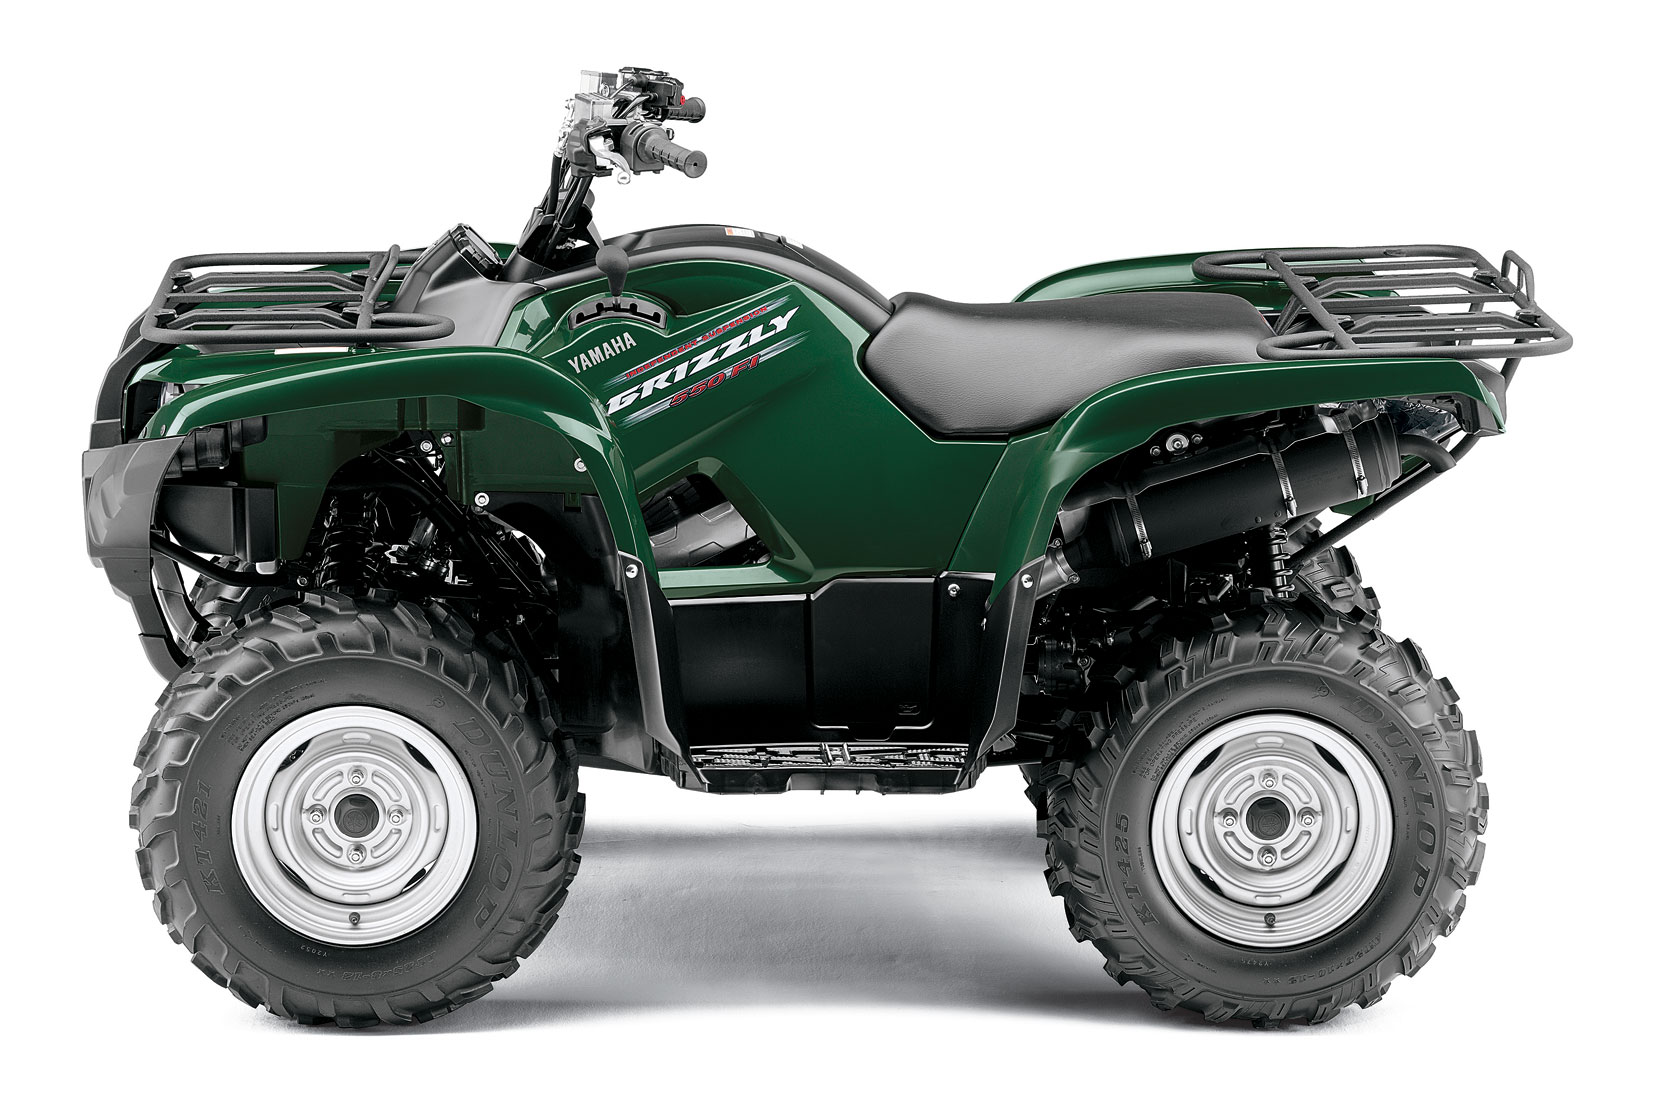 yamaha grizzly 550 fi 4x4 specs 2010 2011 autoevolution. Black Bedroom Furniture Sets. Home Design Ideas